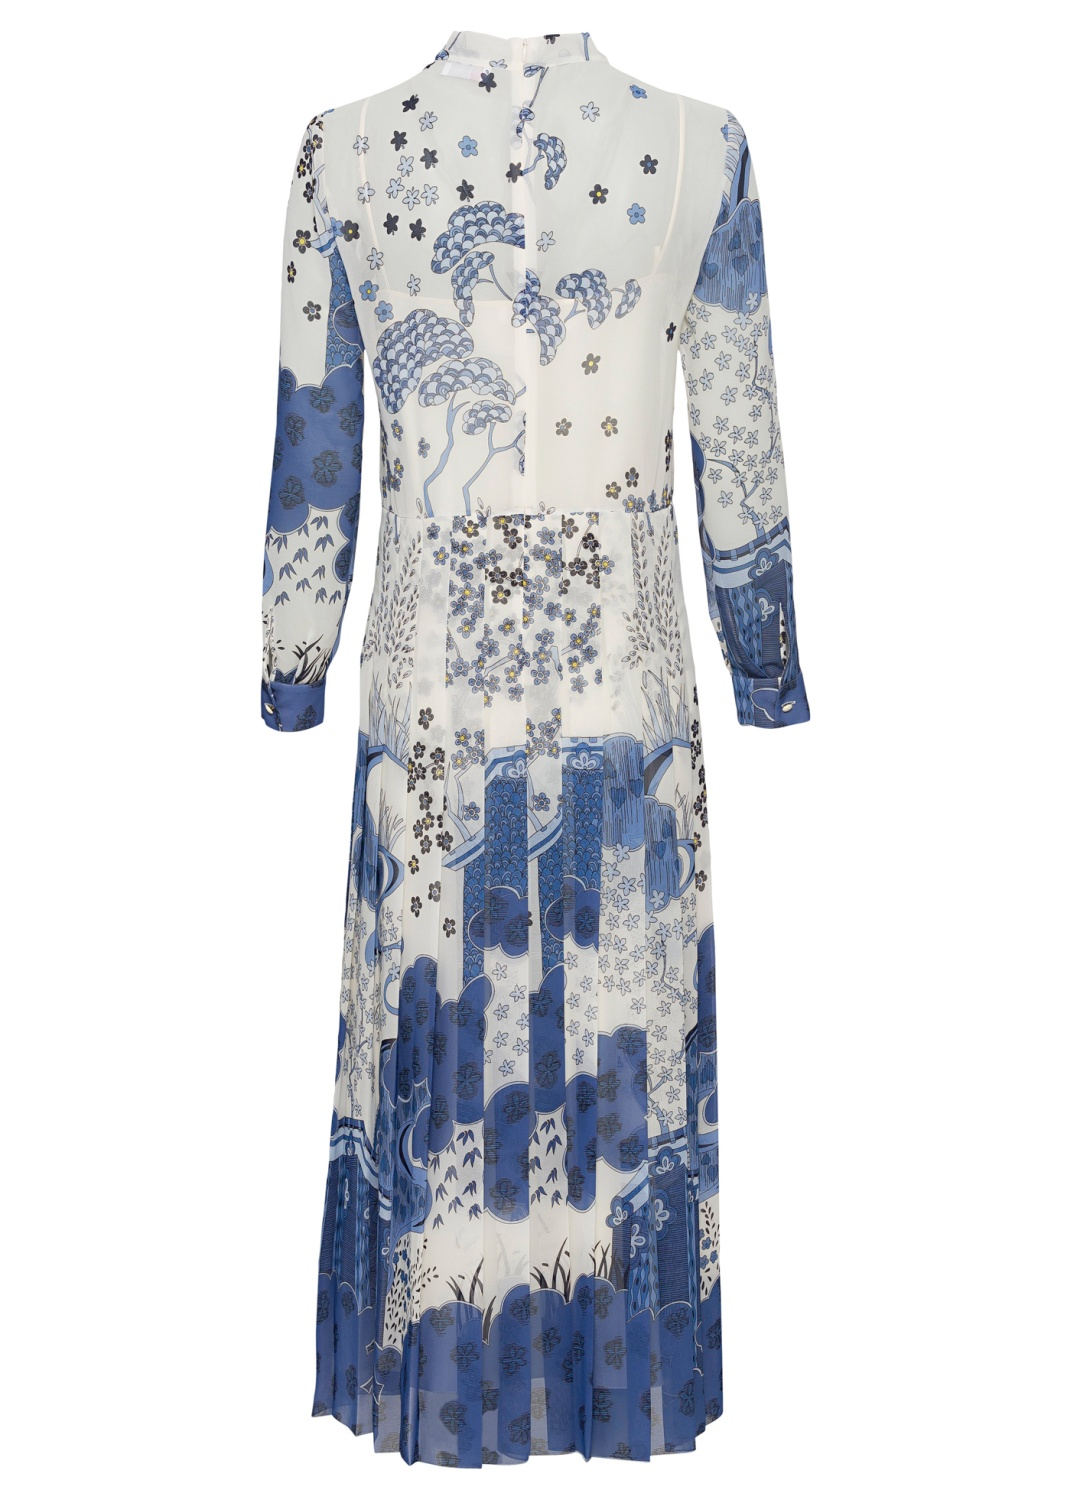 COORD. OFFERTA ABITO ST.ORIEN TOILE,MUSS image number 1